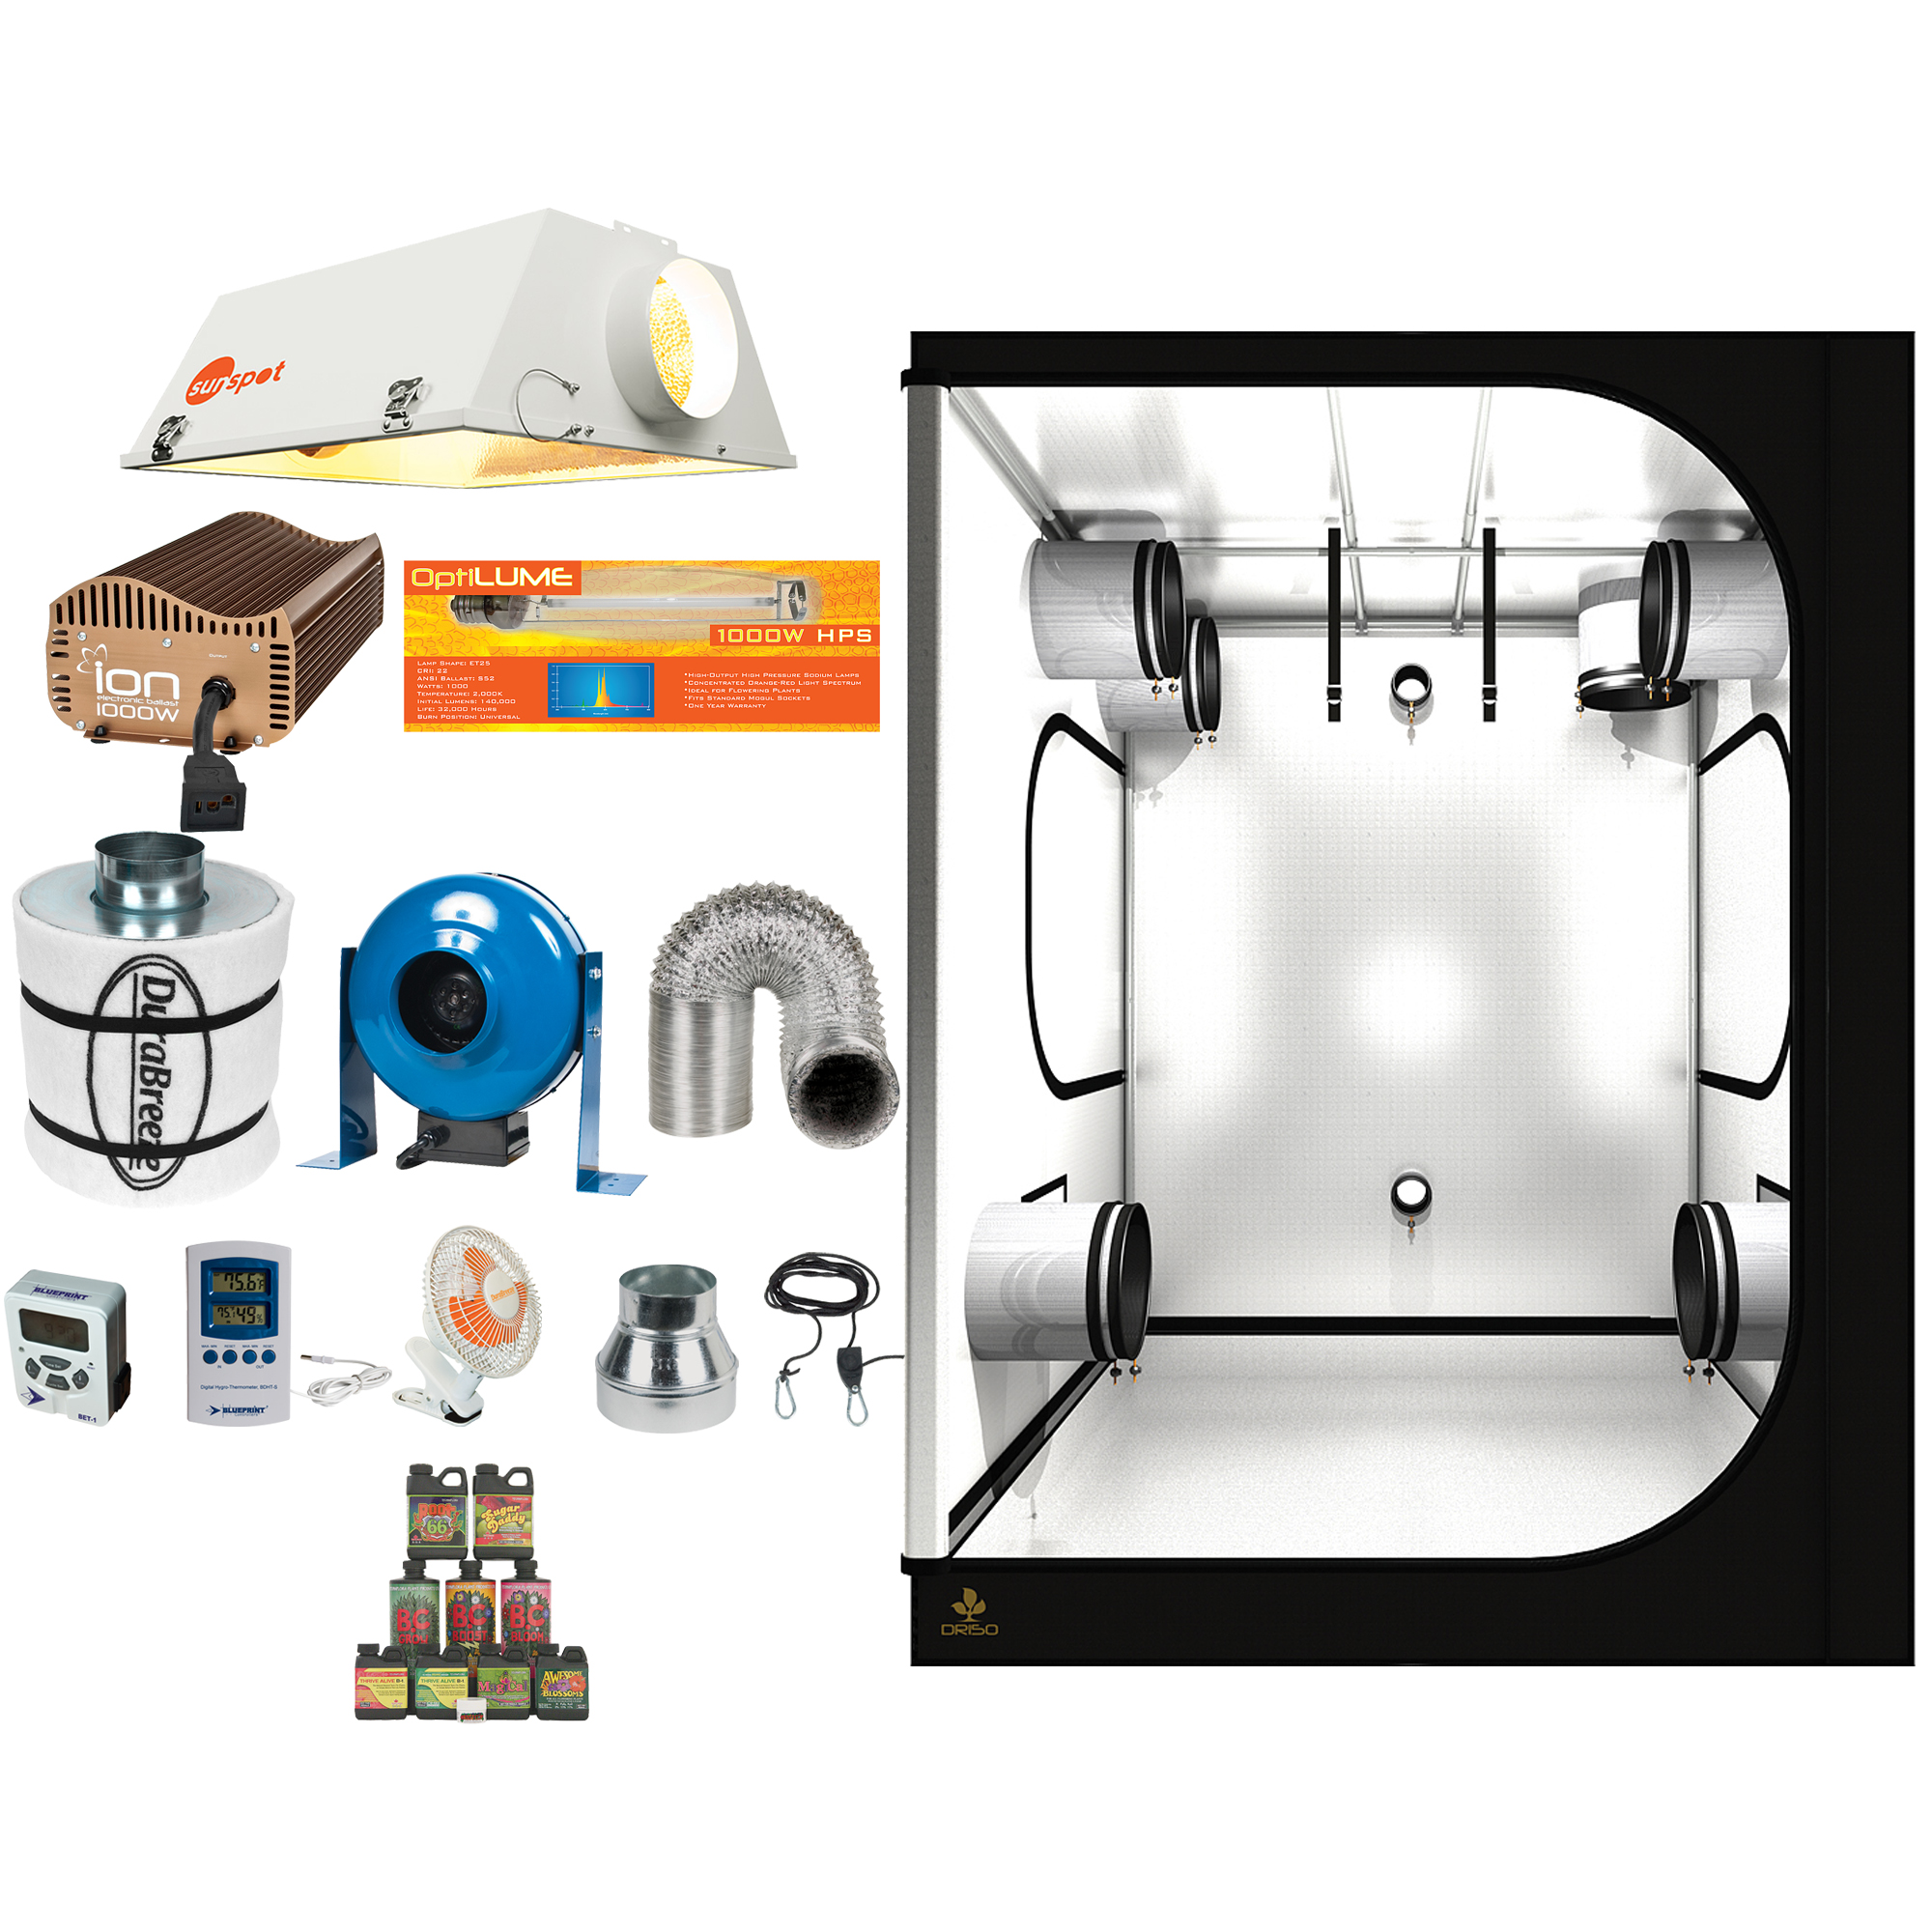 Complete 5 x 5 Grow Tent Kit w/ 1000W Sealed HPS HID, Digital Ballast,  Filter, Fan and more